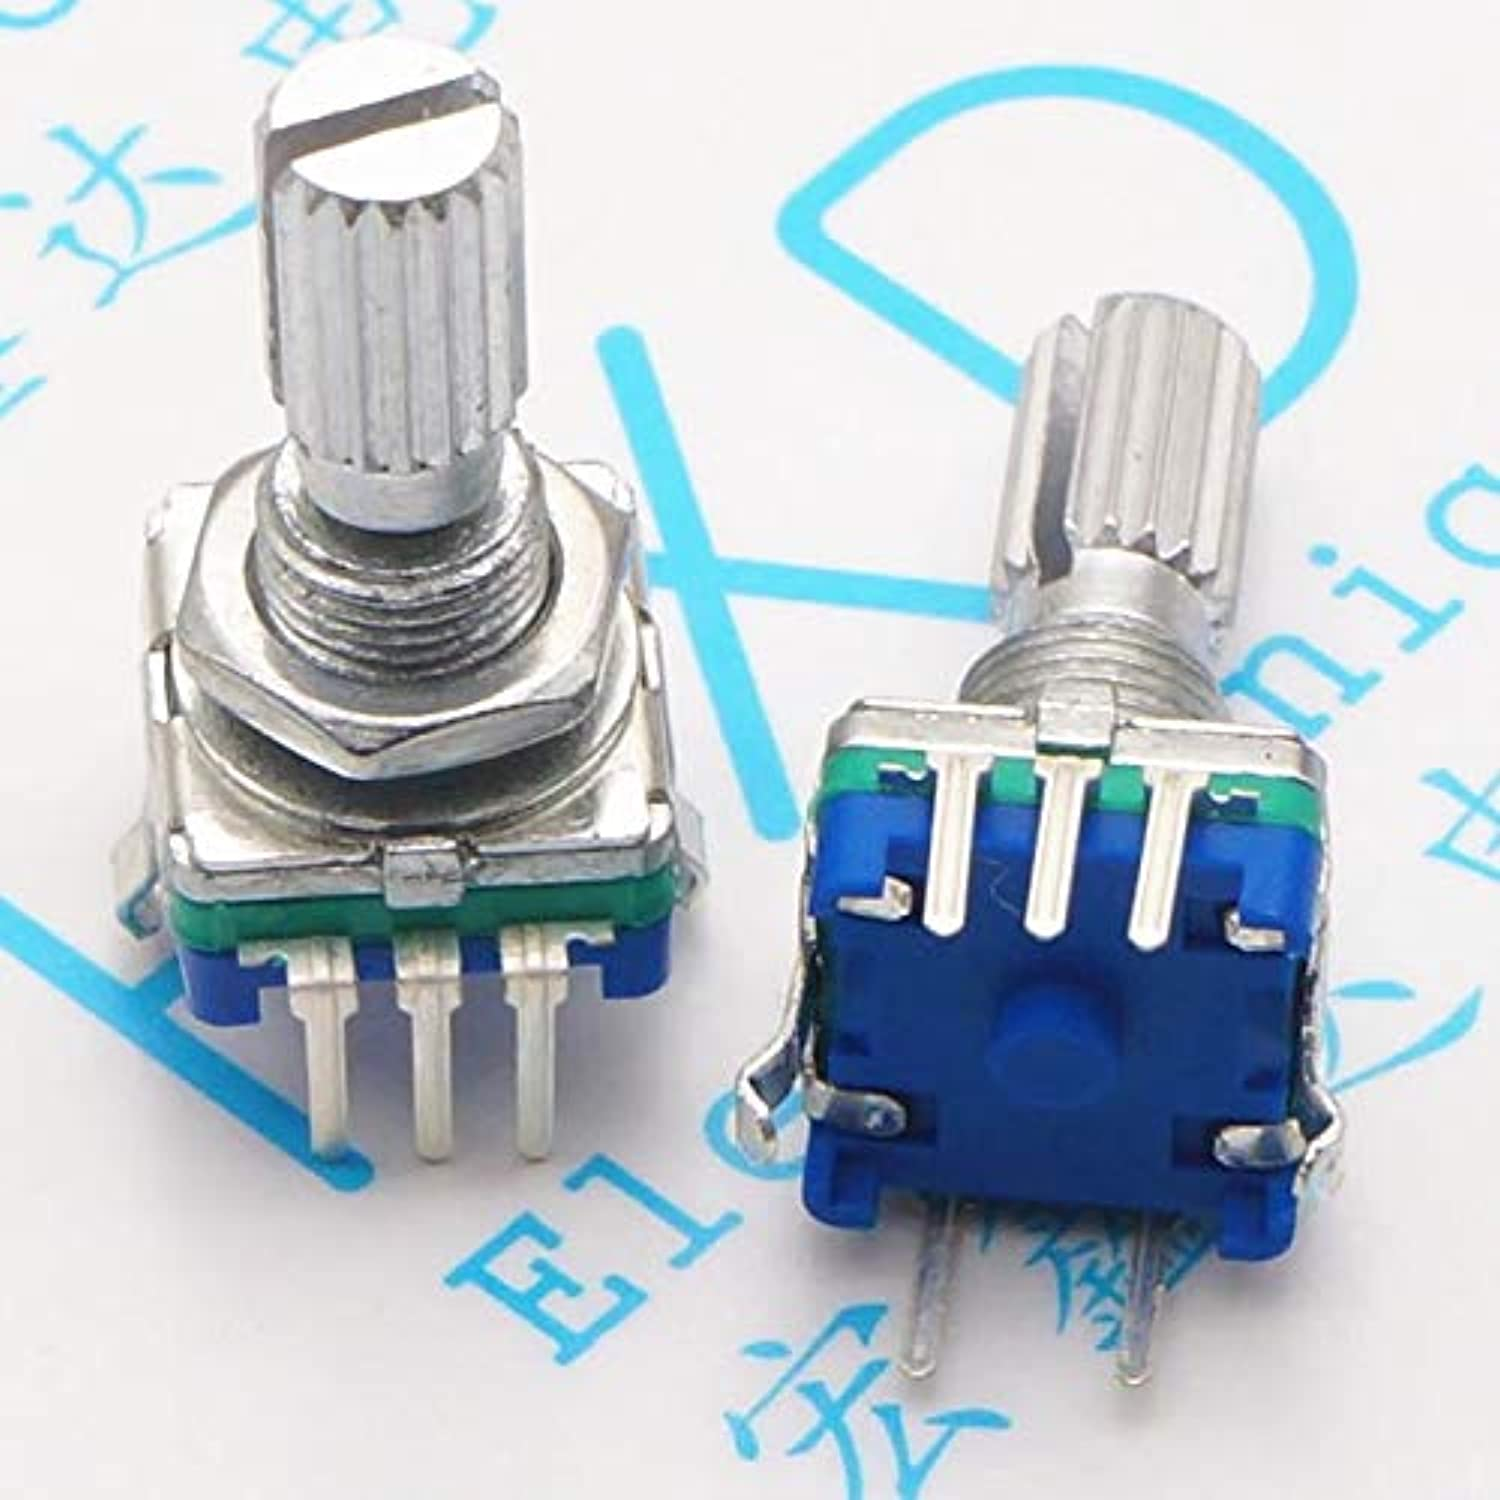 20pcs lot EC11 Plum 20mm Handle redary Encoder encoding Switch Digital Potentiometer with Switch pin Five